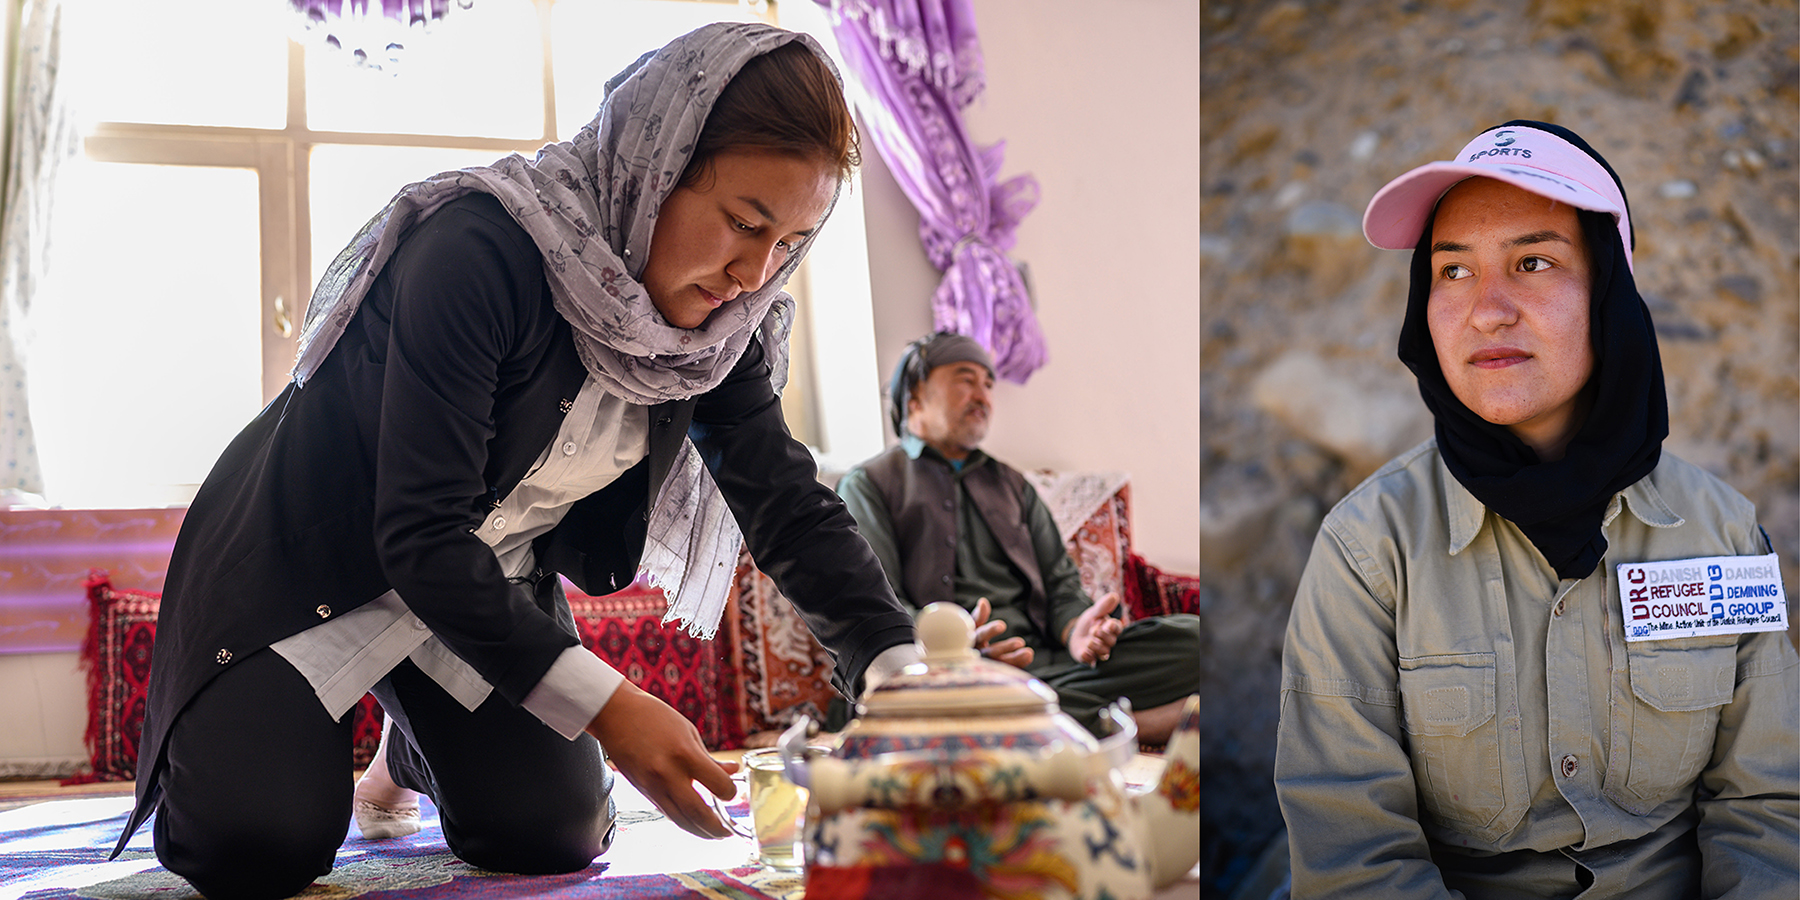 Zarah Atayee, who at 21 is the youngest woman on the demining team, at home with her father, who used to work as a deminer himself, and in the field in Bamiyan on Sept. 18.